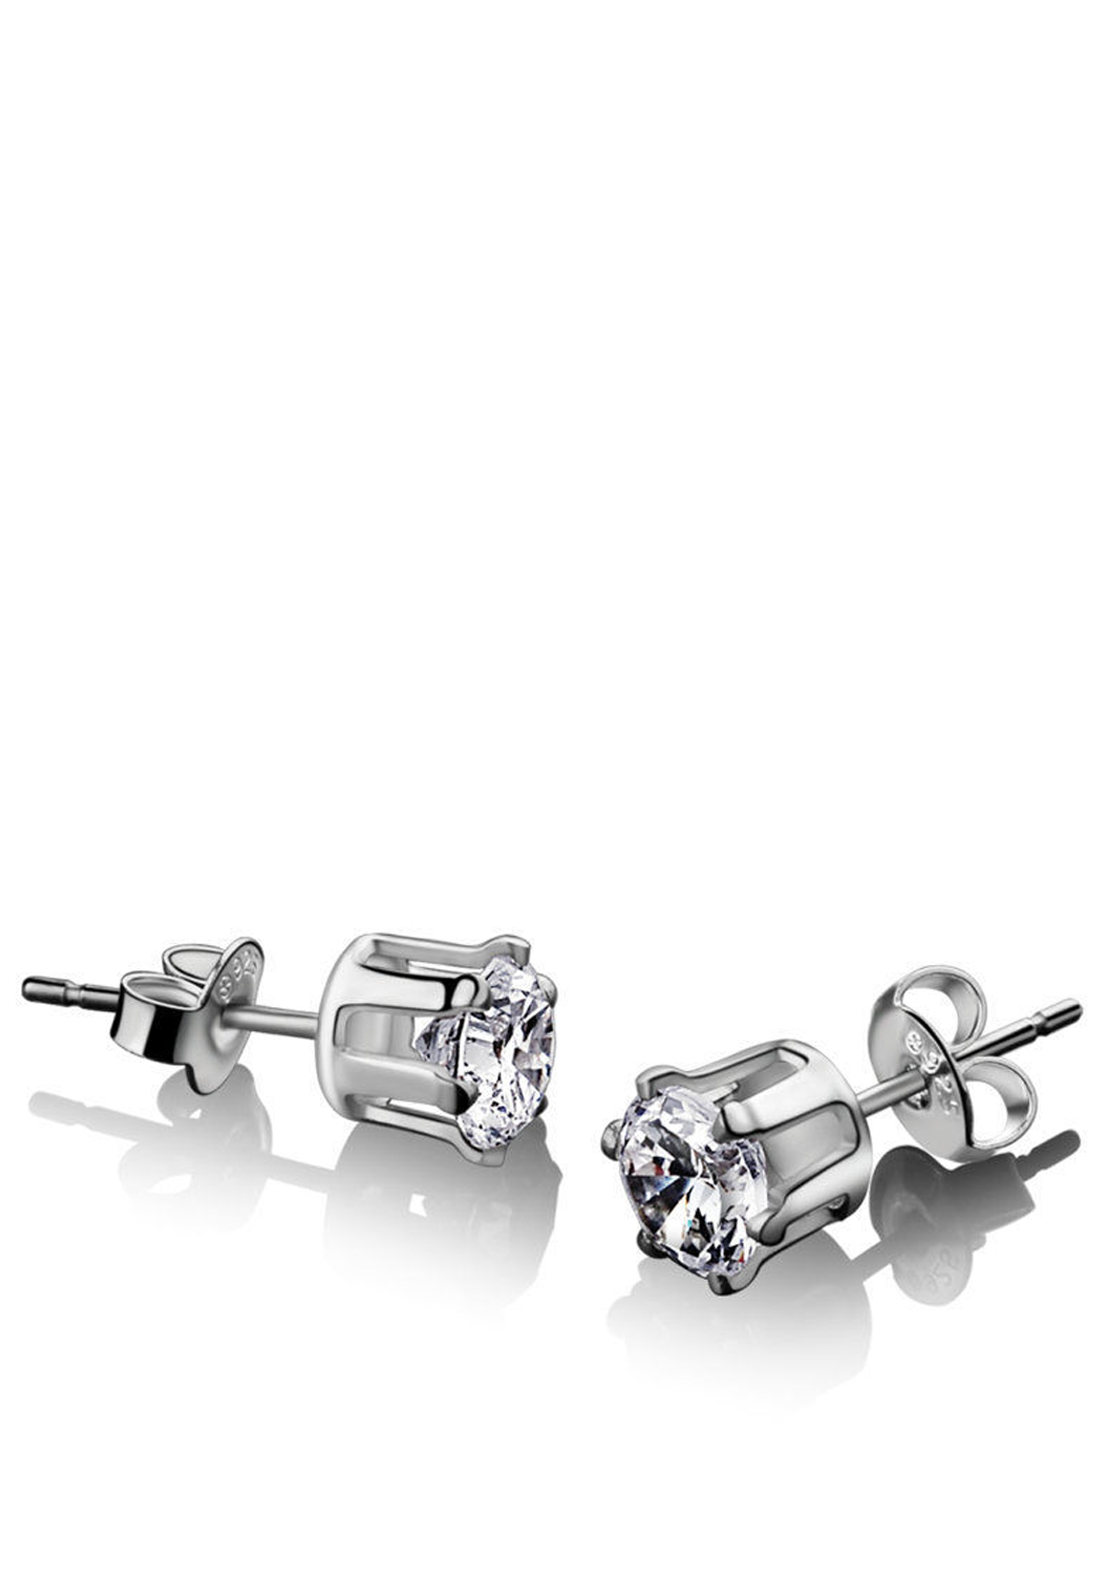 Newbridge Silverware Stud Earring Clear Stone 9mm